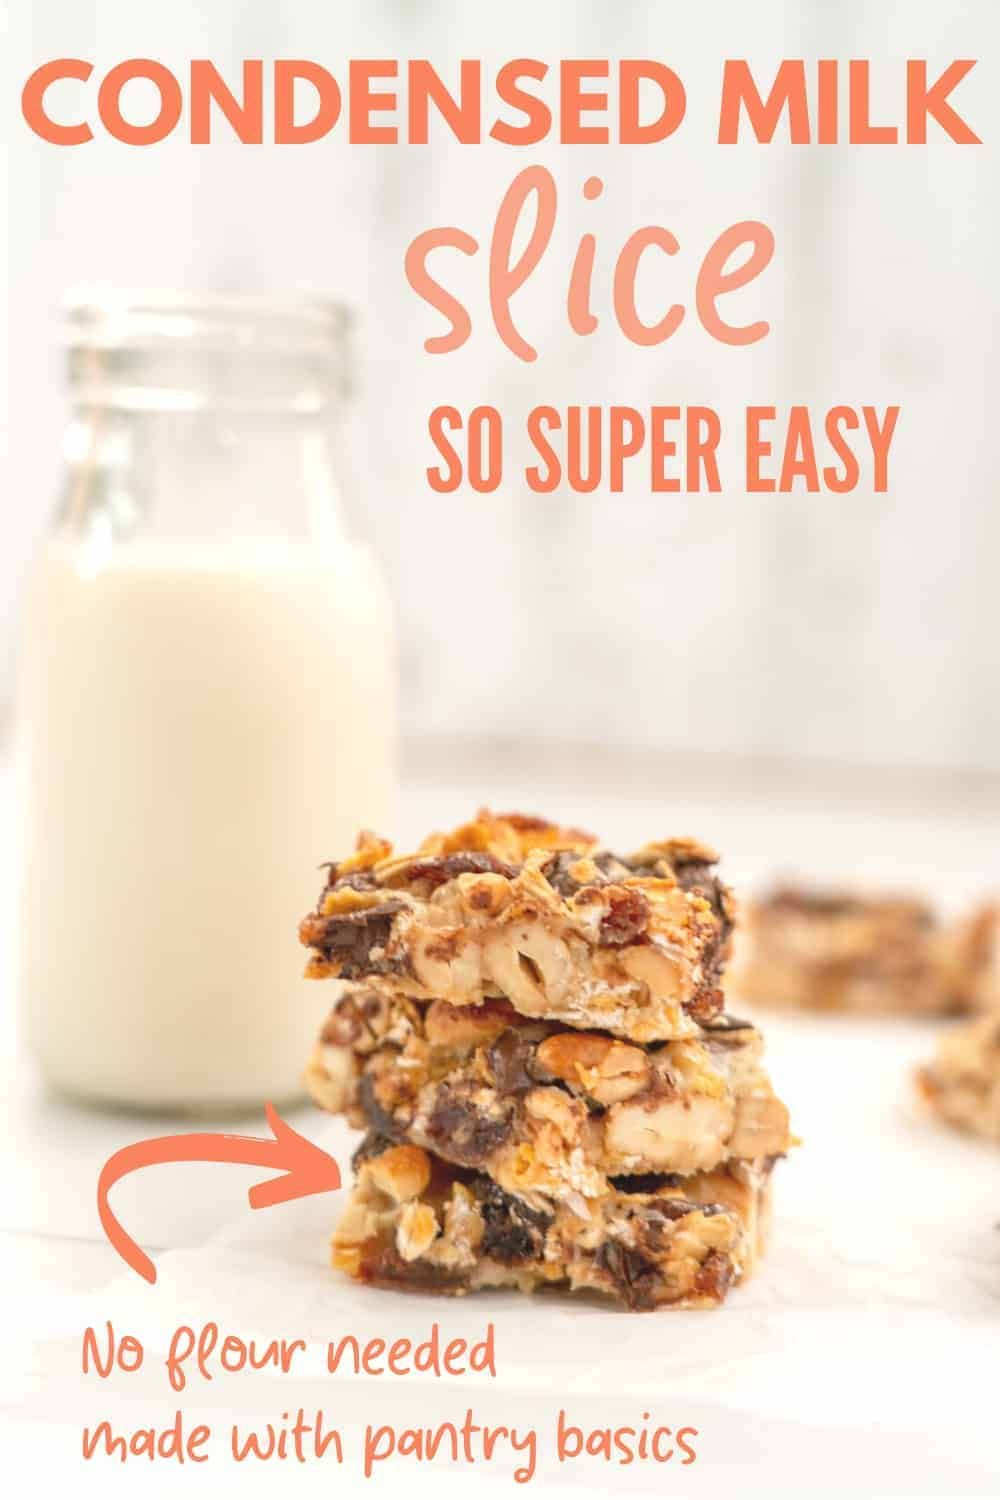 Easy 5 Cup Slice Recipe In 2020 Lactation Cookies Recipe Easy Baking Recipes Milk Recipes